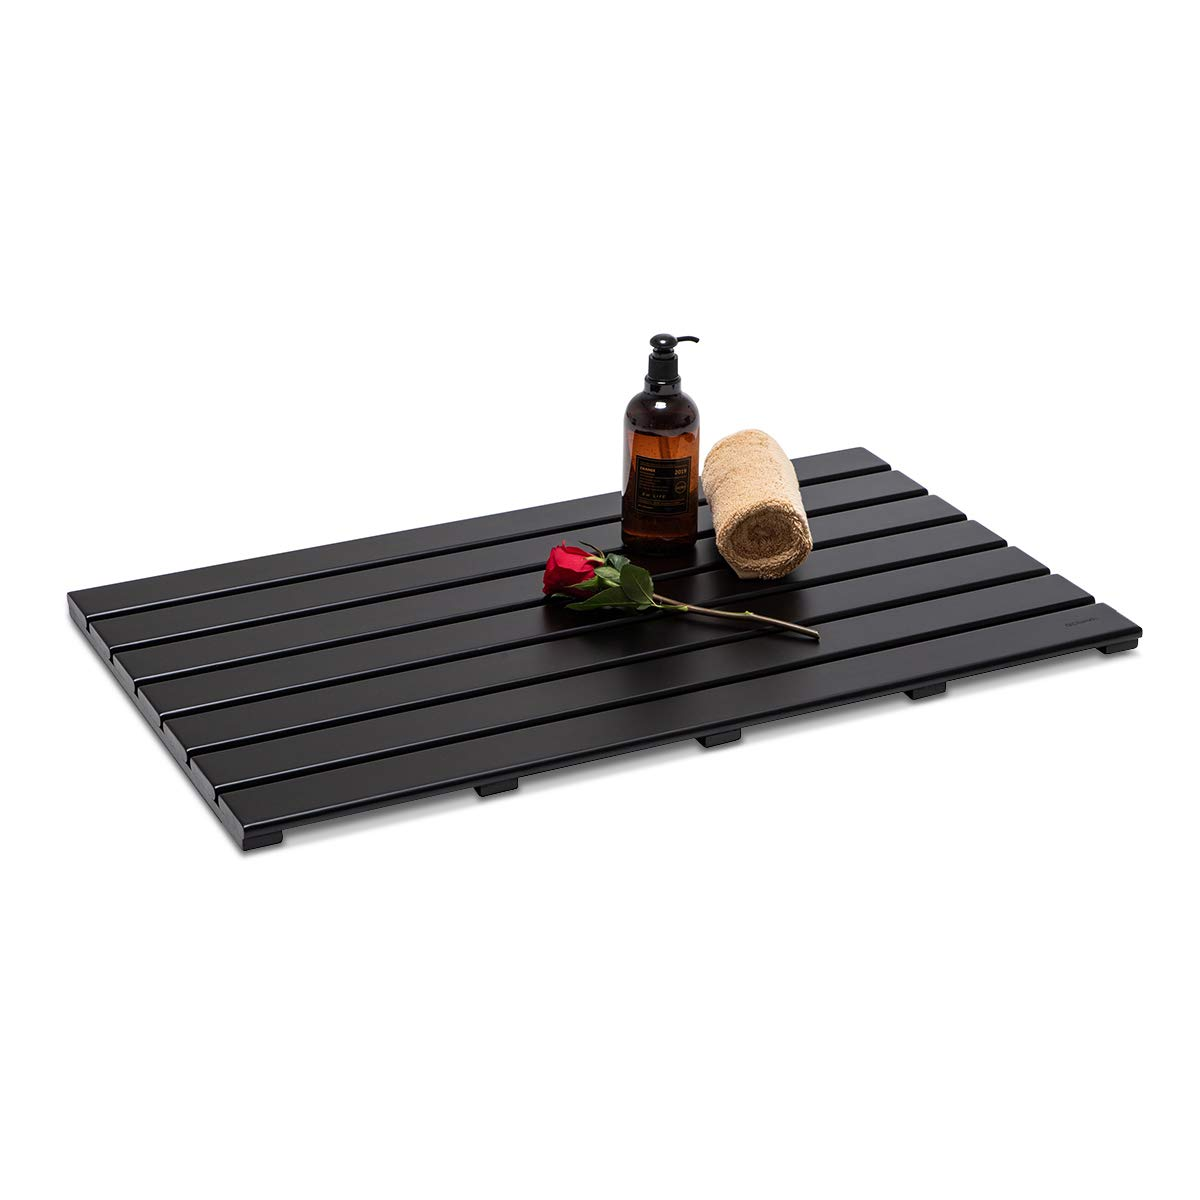 GOBAM Extra Large Bamboo Shower Mat Bath Mat for Bathtub Spa Relaxation, Non-Slip Bathroom Floor Mat for Indoor or Outdoor, 31.50 x 18.35inches, Black